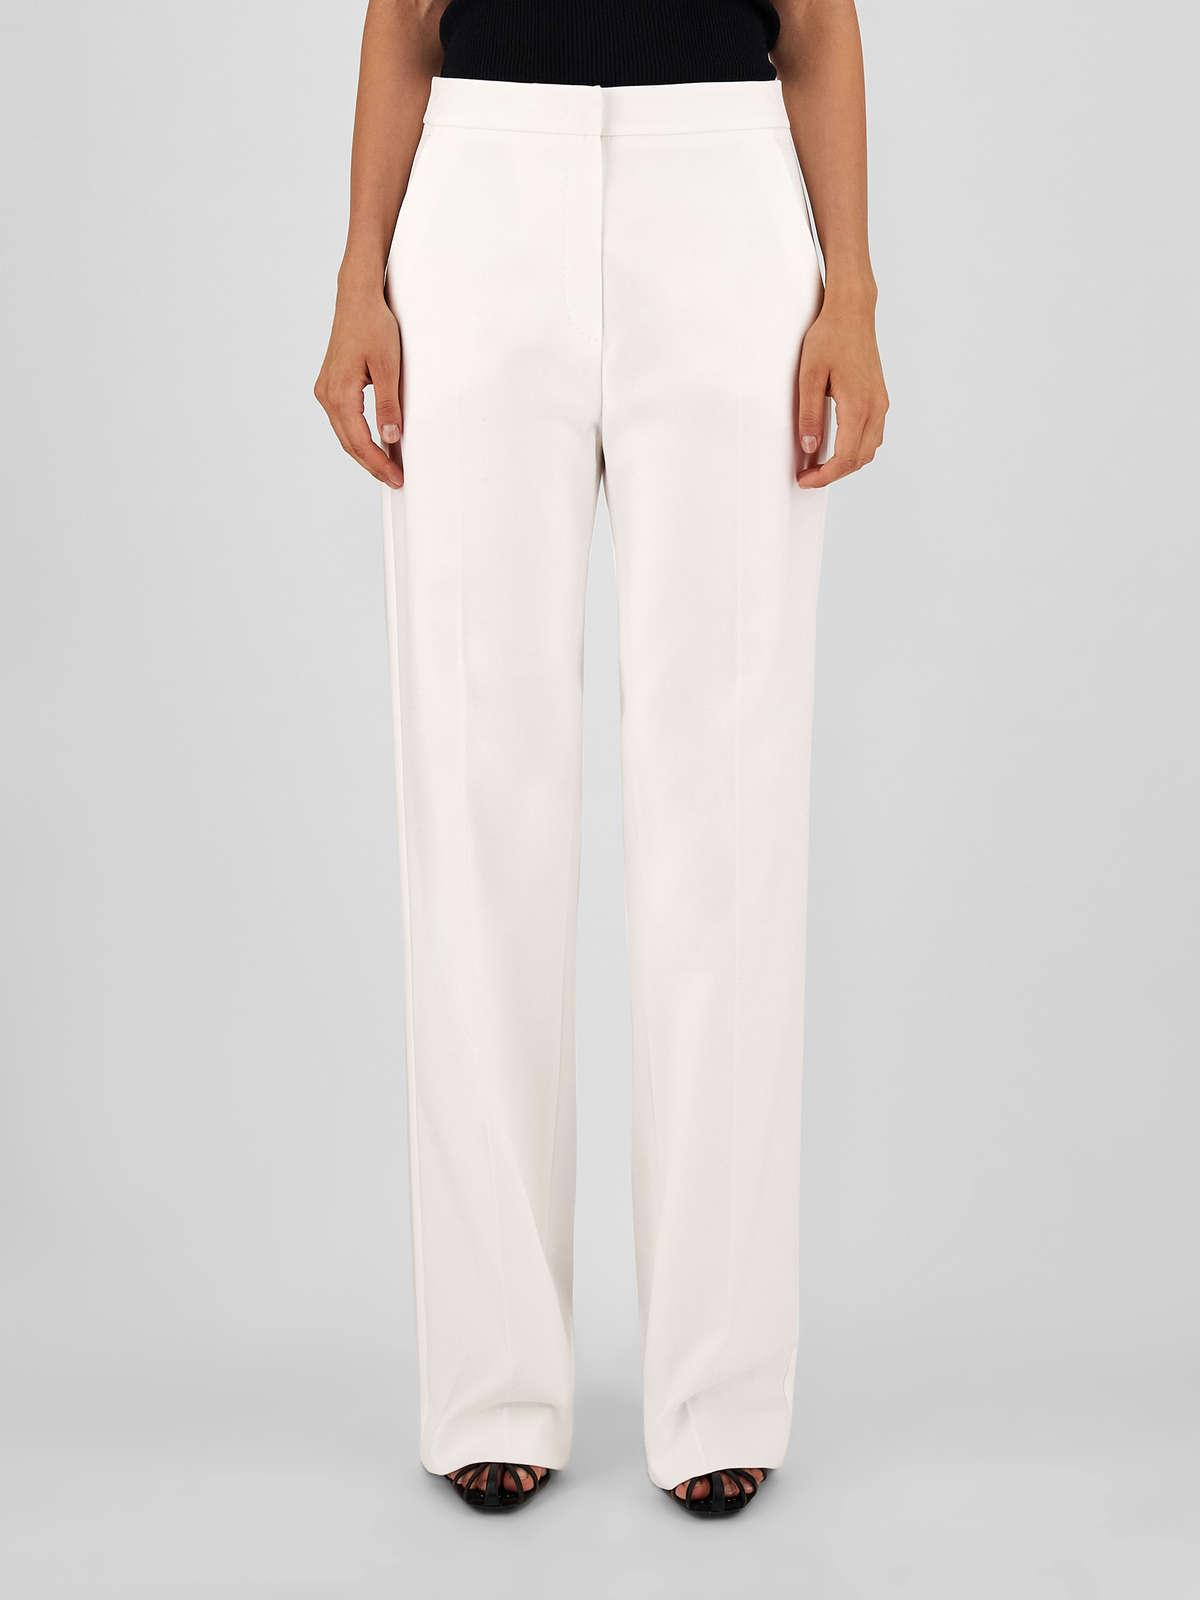 Womens Max Mara Trousers And Jeans   Cotton Trousers Optical White